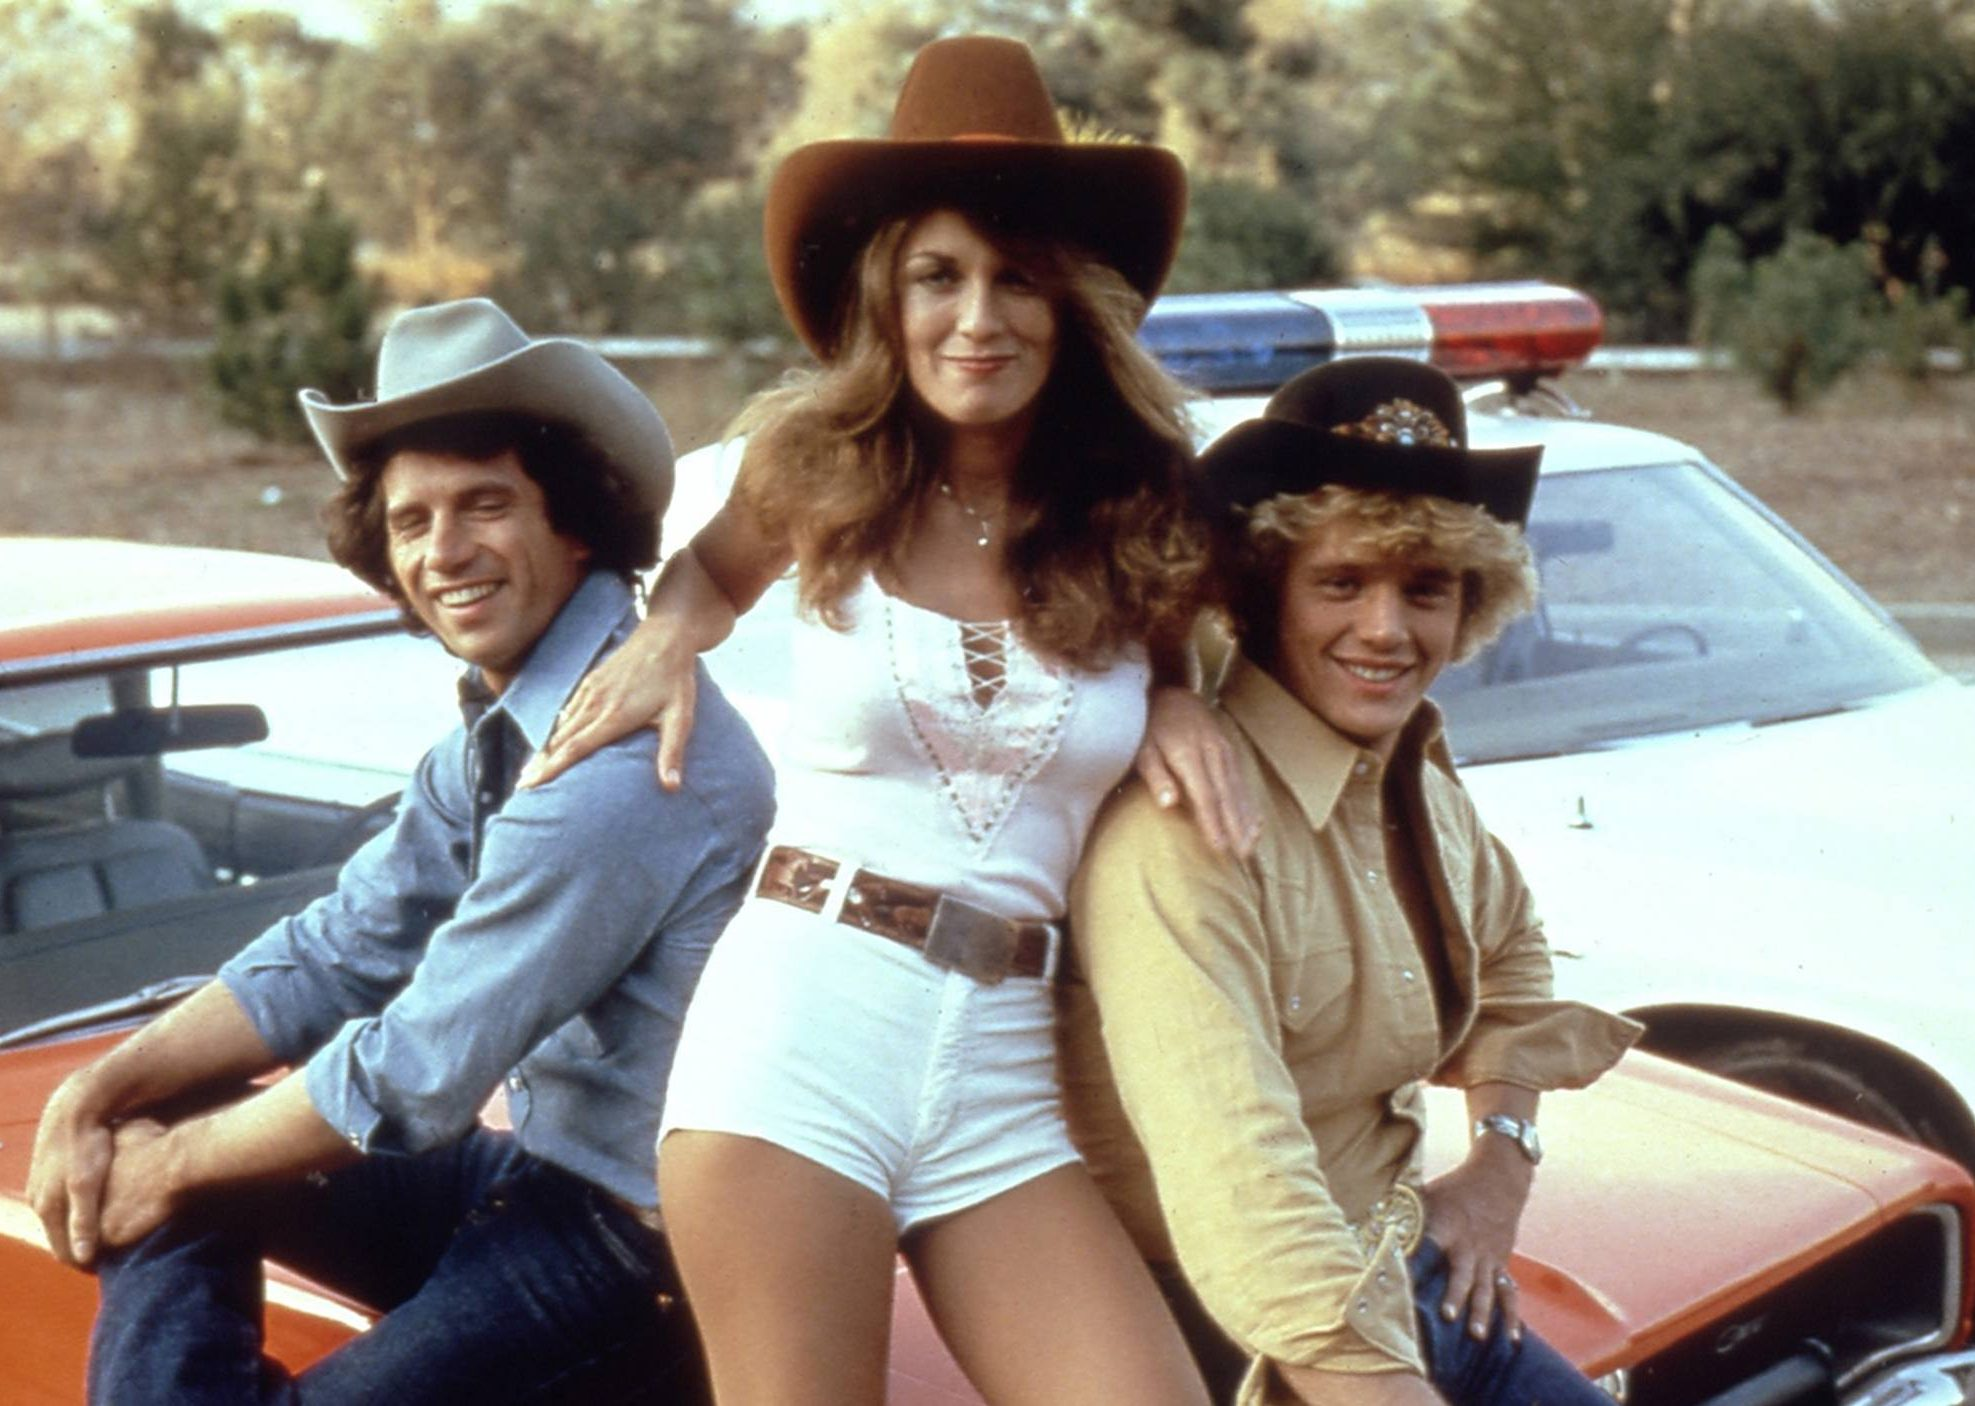 today jeans daisy dukes 150612 tease 4ce64b9940f2c7384470a2dd6352cea0 e1617097675379 Do You Remember The Cast Of Dukes Of Hazzard? This Is What They Look Like Now!